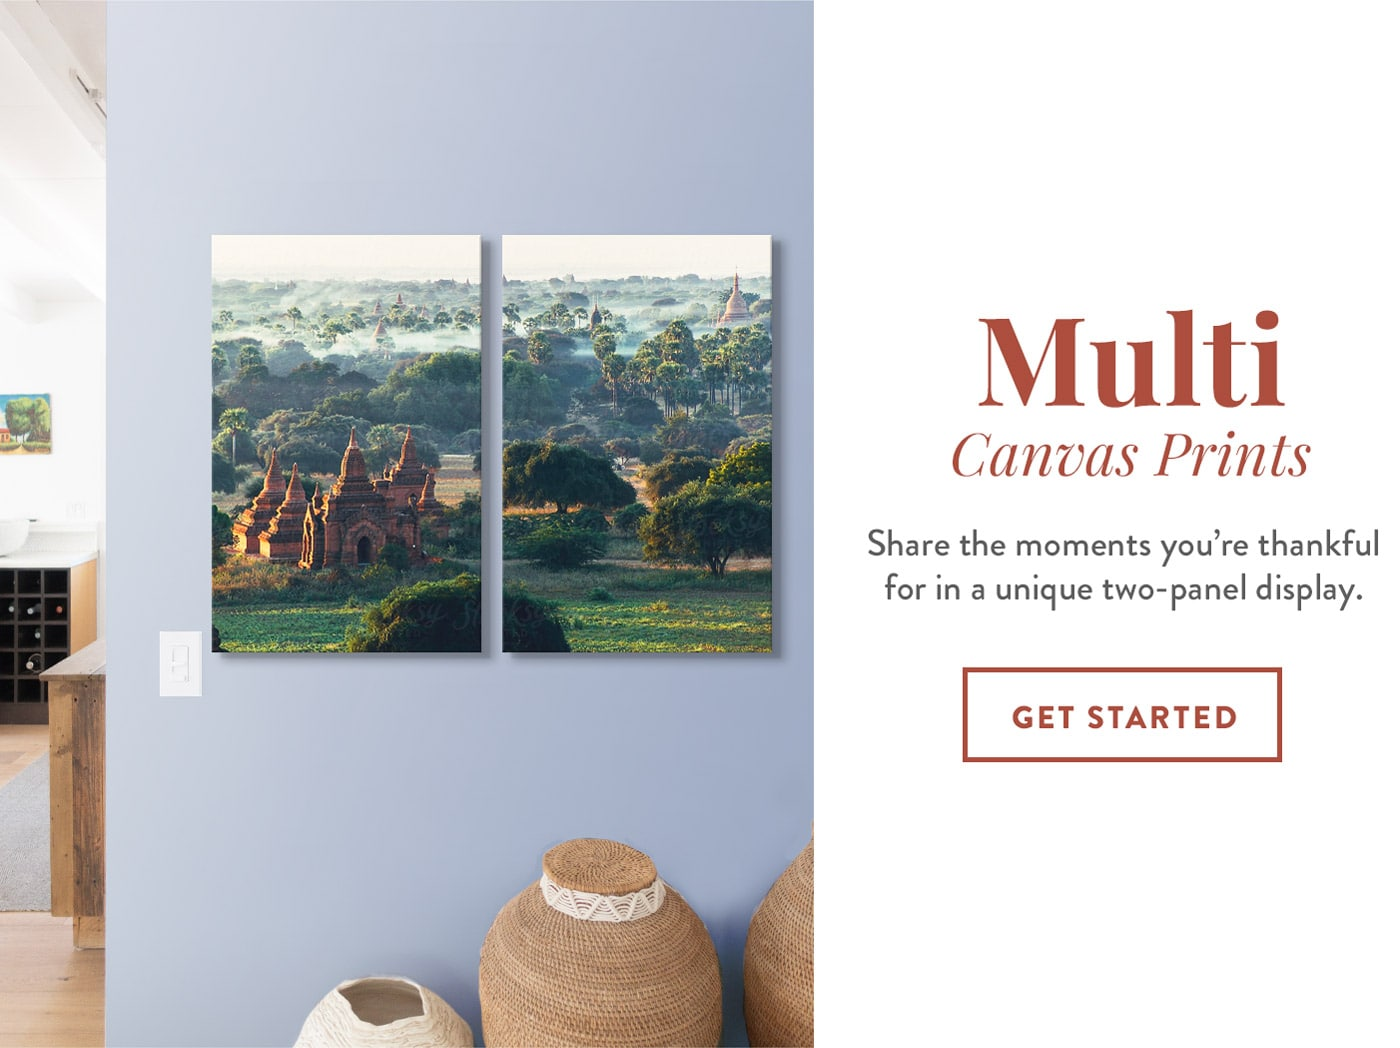 Multi Canvas Prints   Share the moments you're thankful for in a unique two-panel display.   GET STARTED